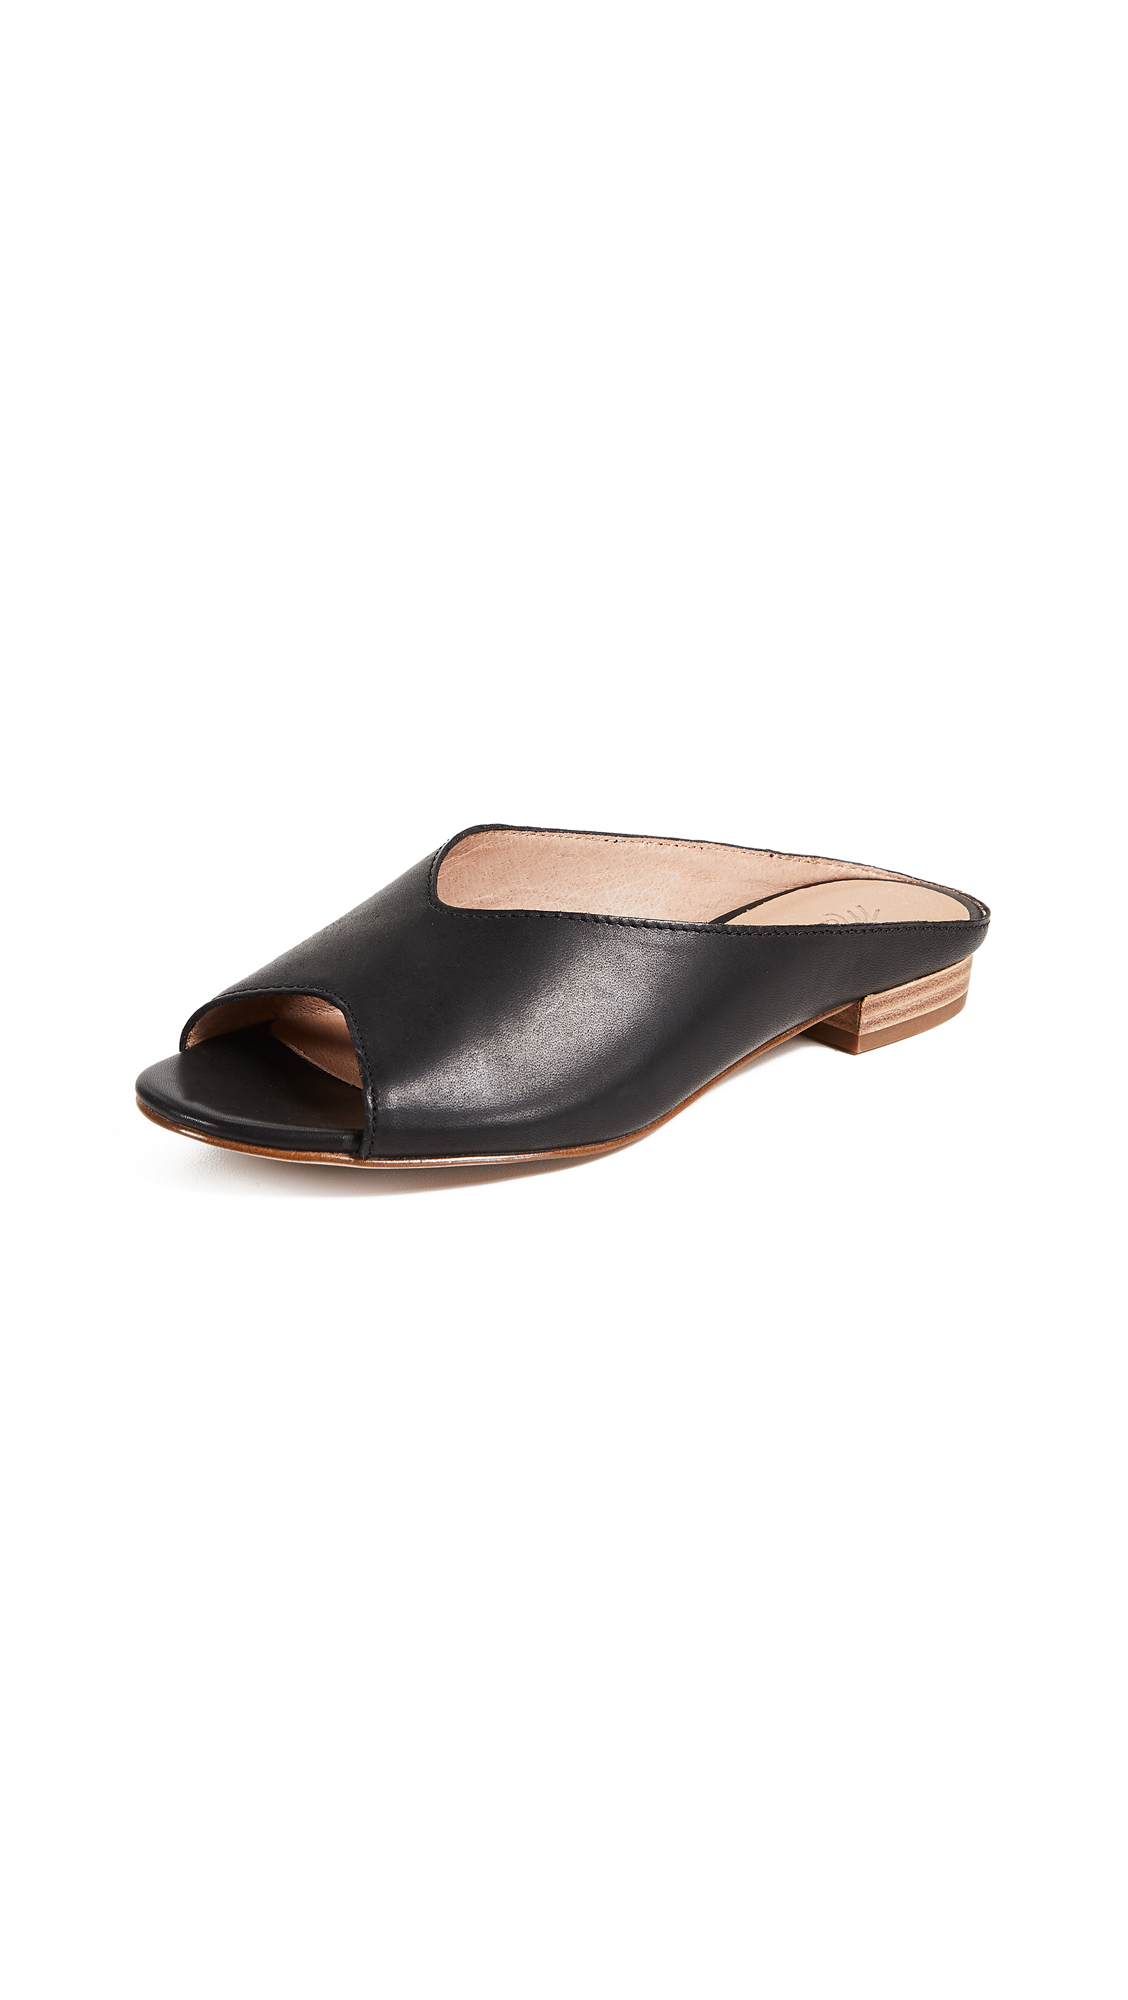 Madewell The Tavi Slides - True Black